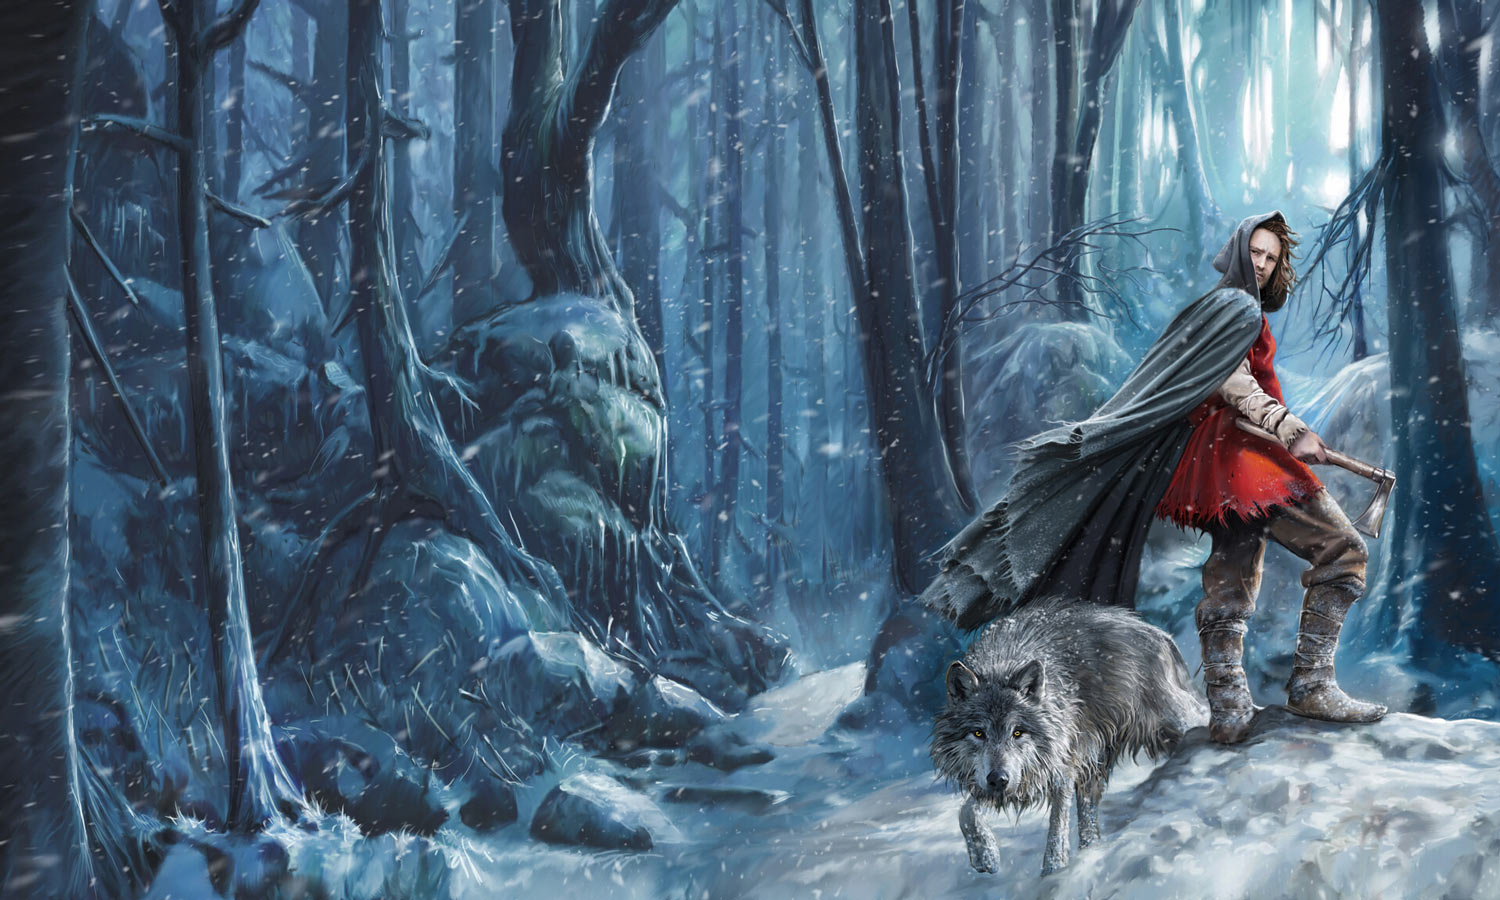 Realm of the Elderlings Reading Order: In what order to read Robin Hobb's Book series?